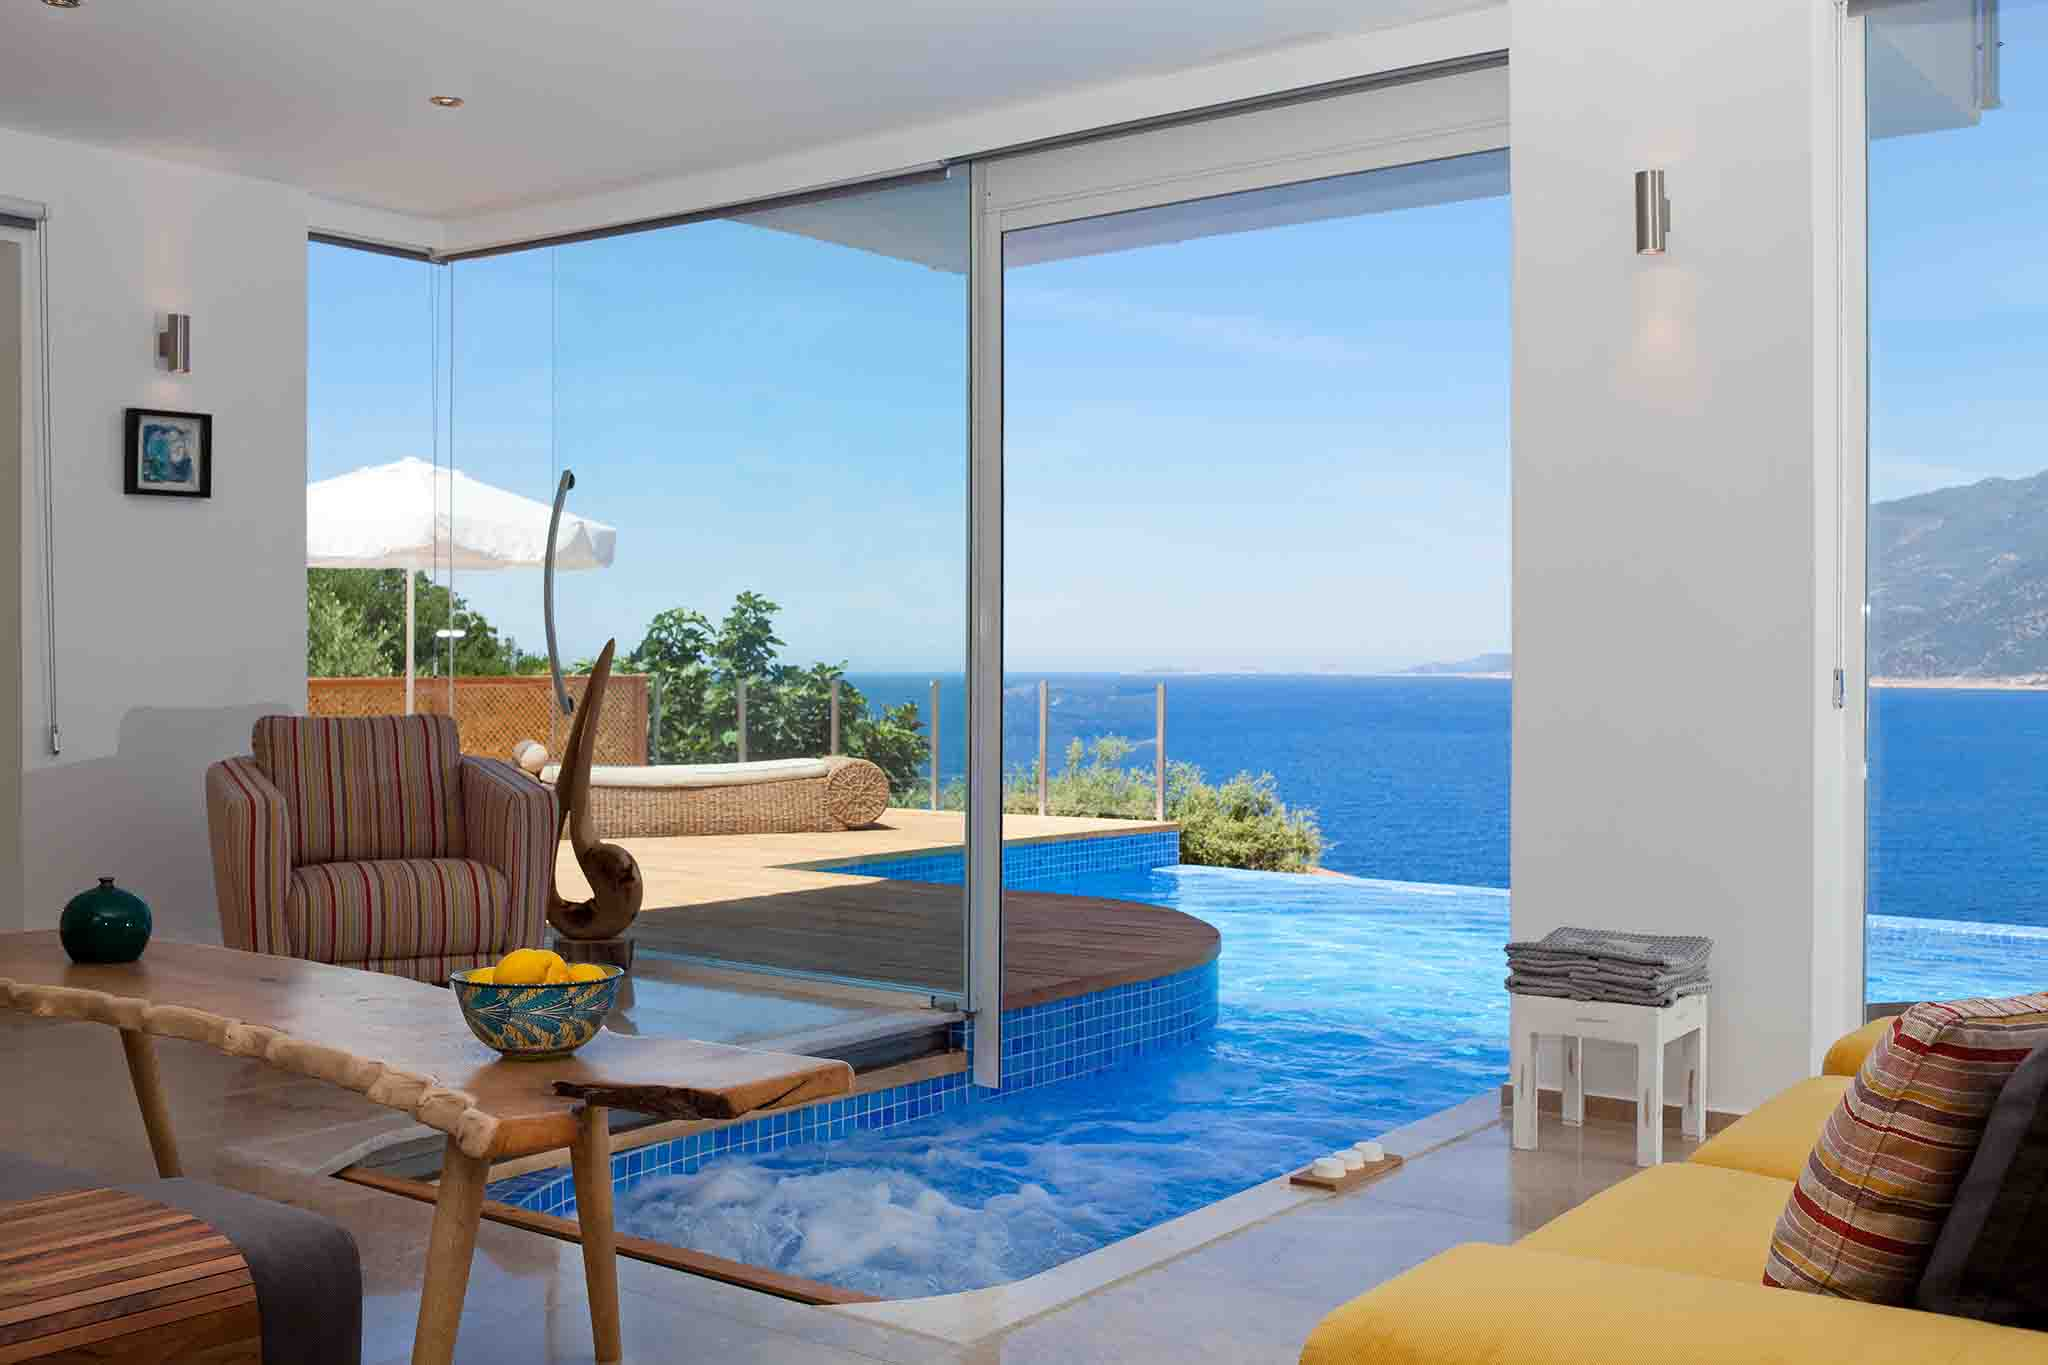 exclusive escapes unveils new pool suites on the turkish mediterranean